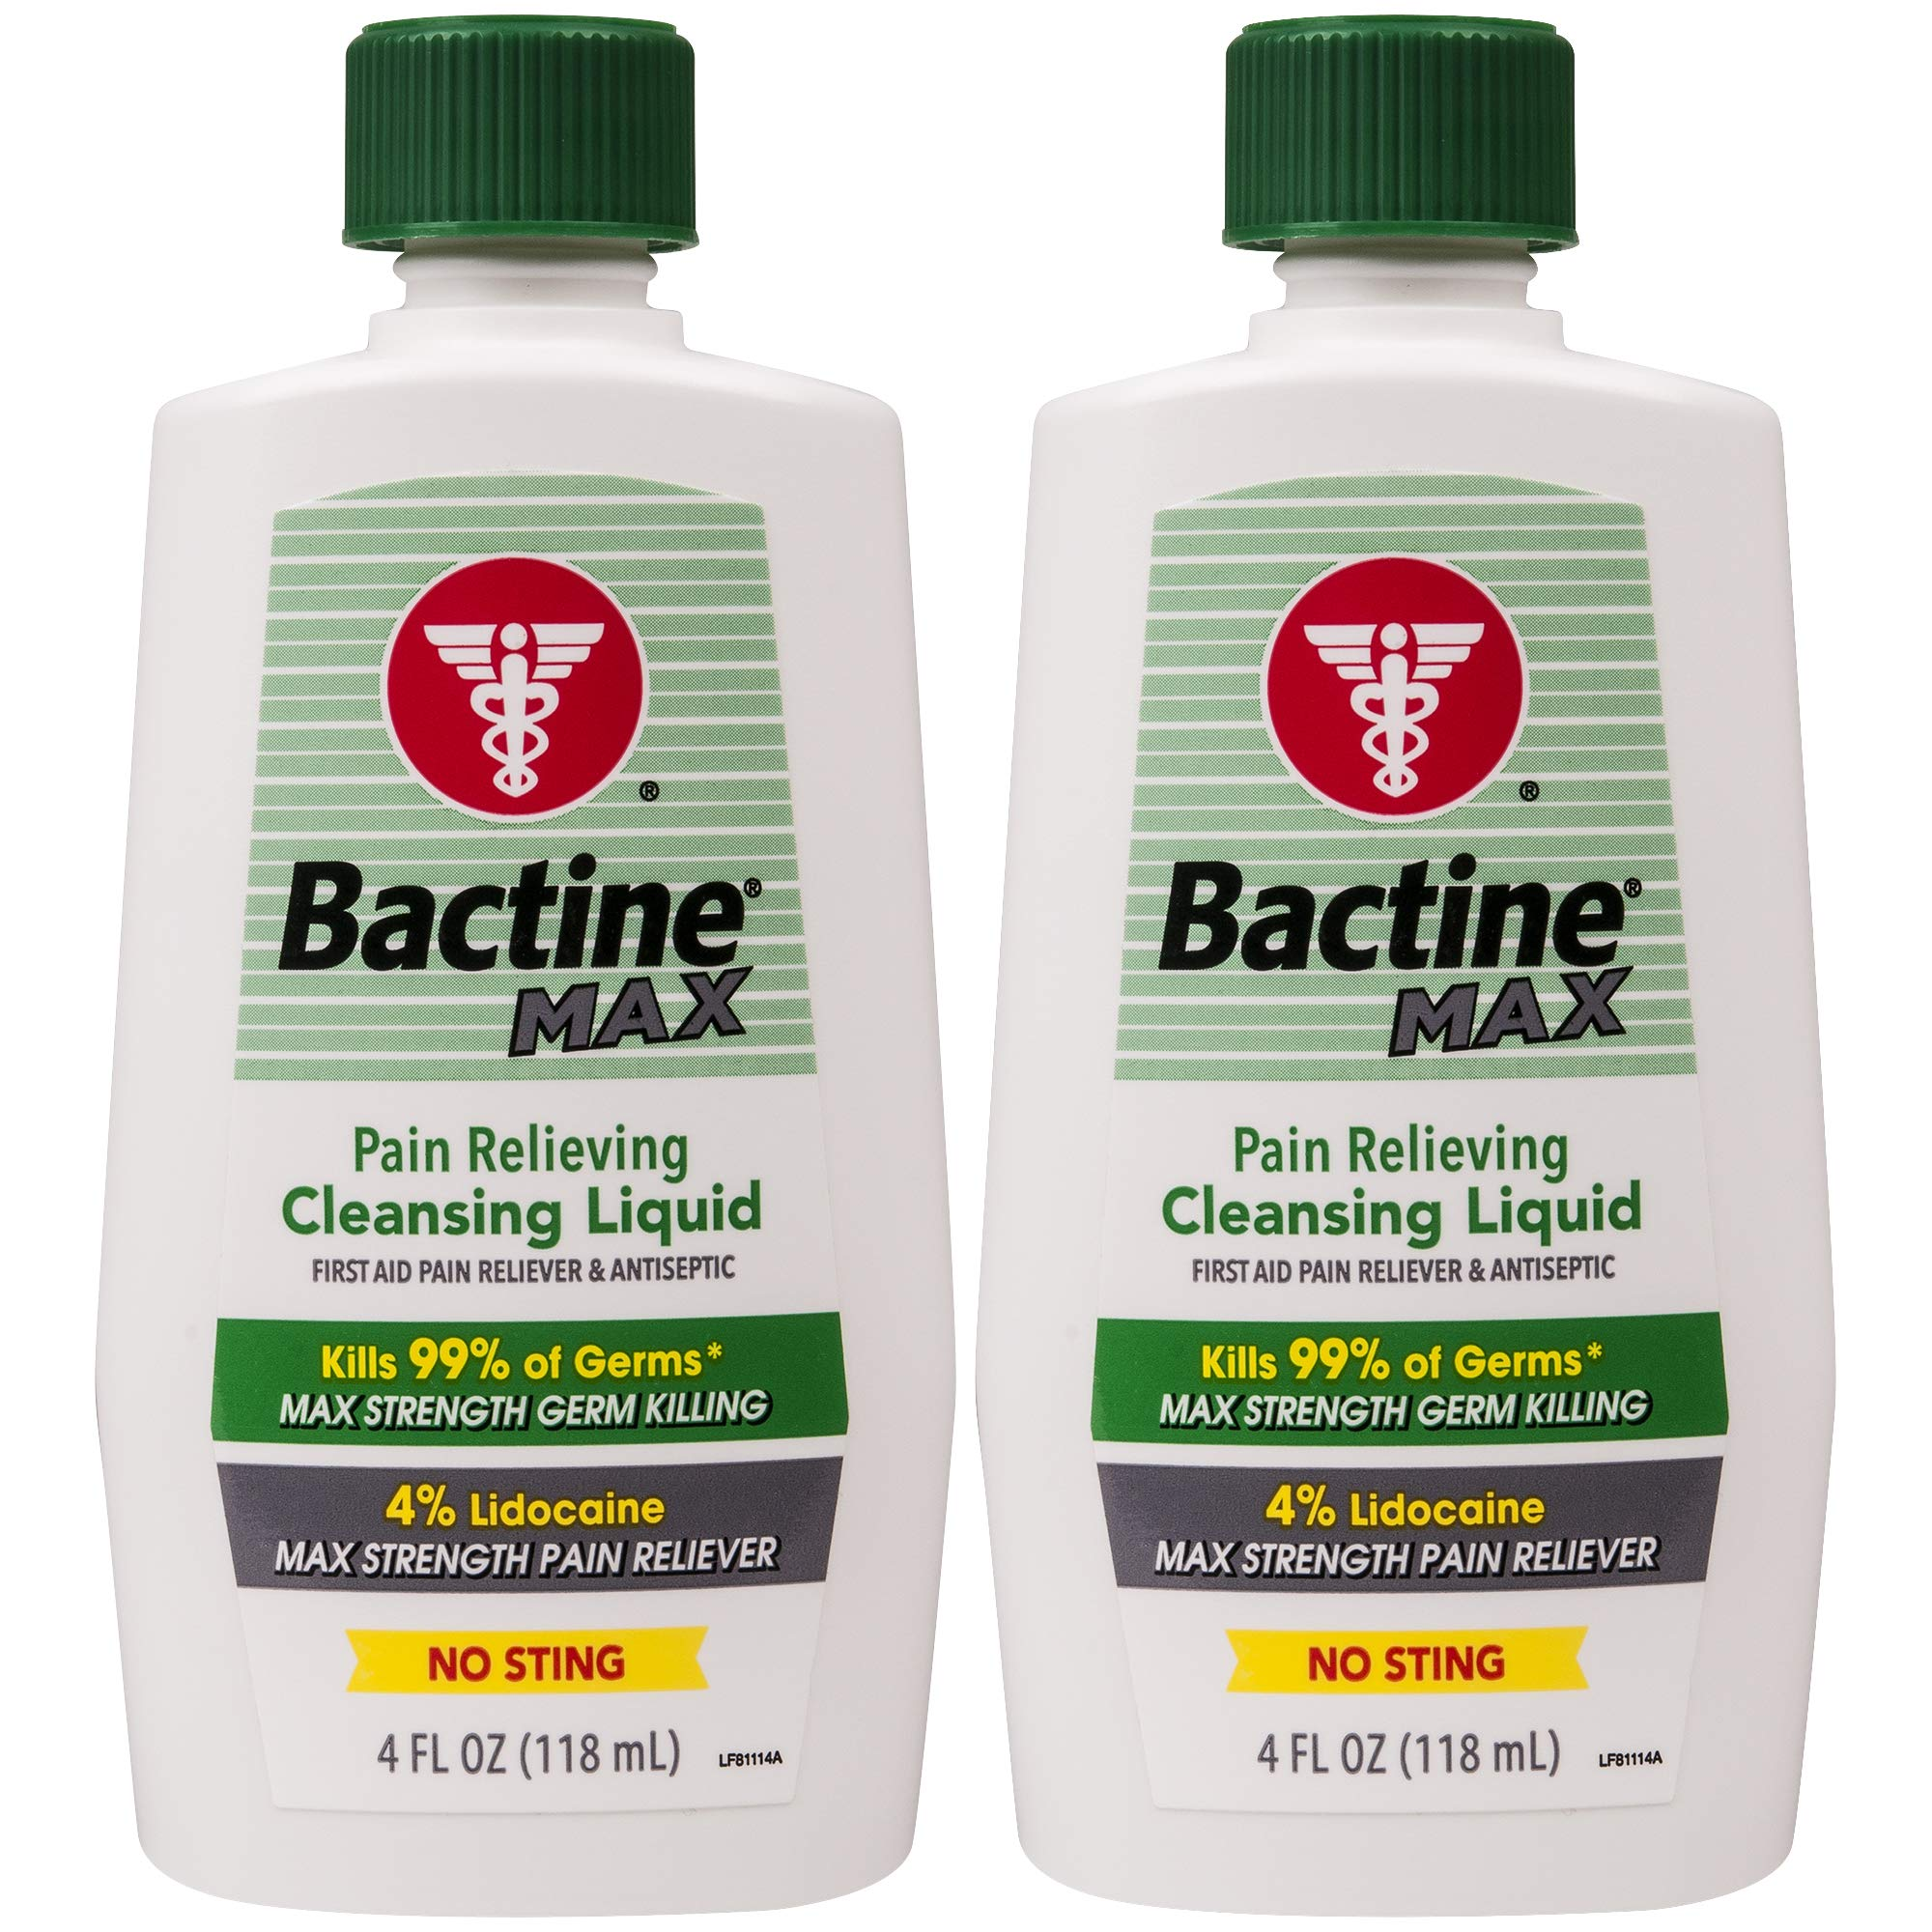 Bactine Max Pain Relieving Cleansing Liquid, 4 Oz, 2Count by Bactine